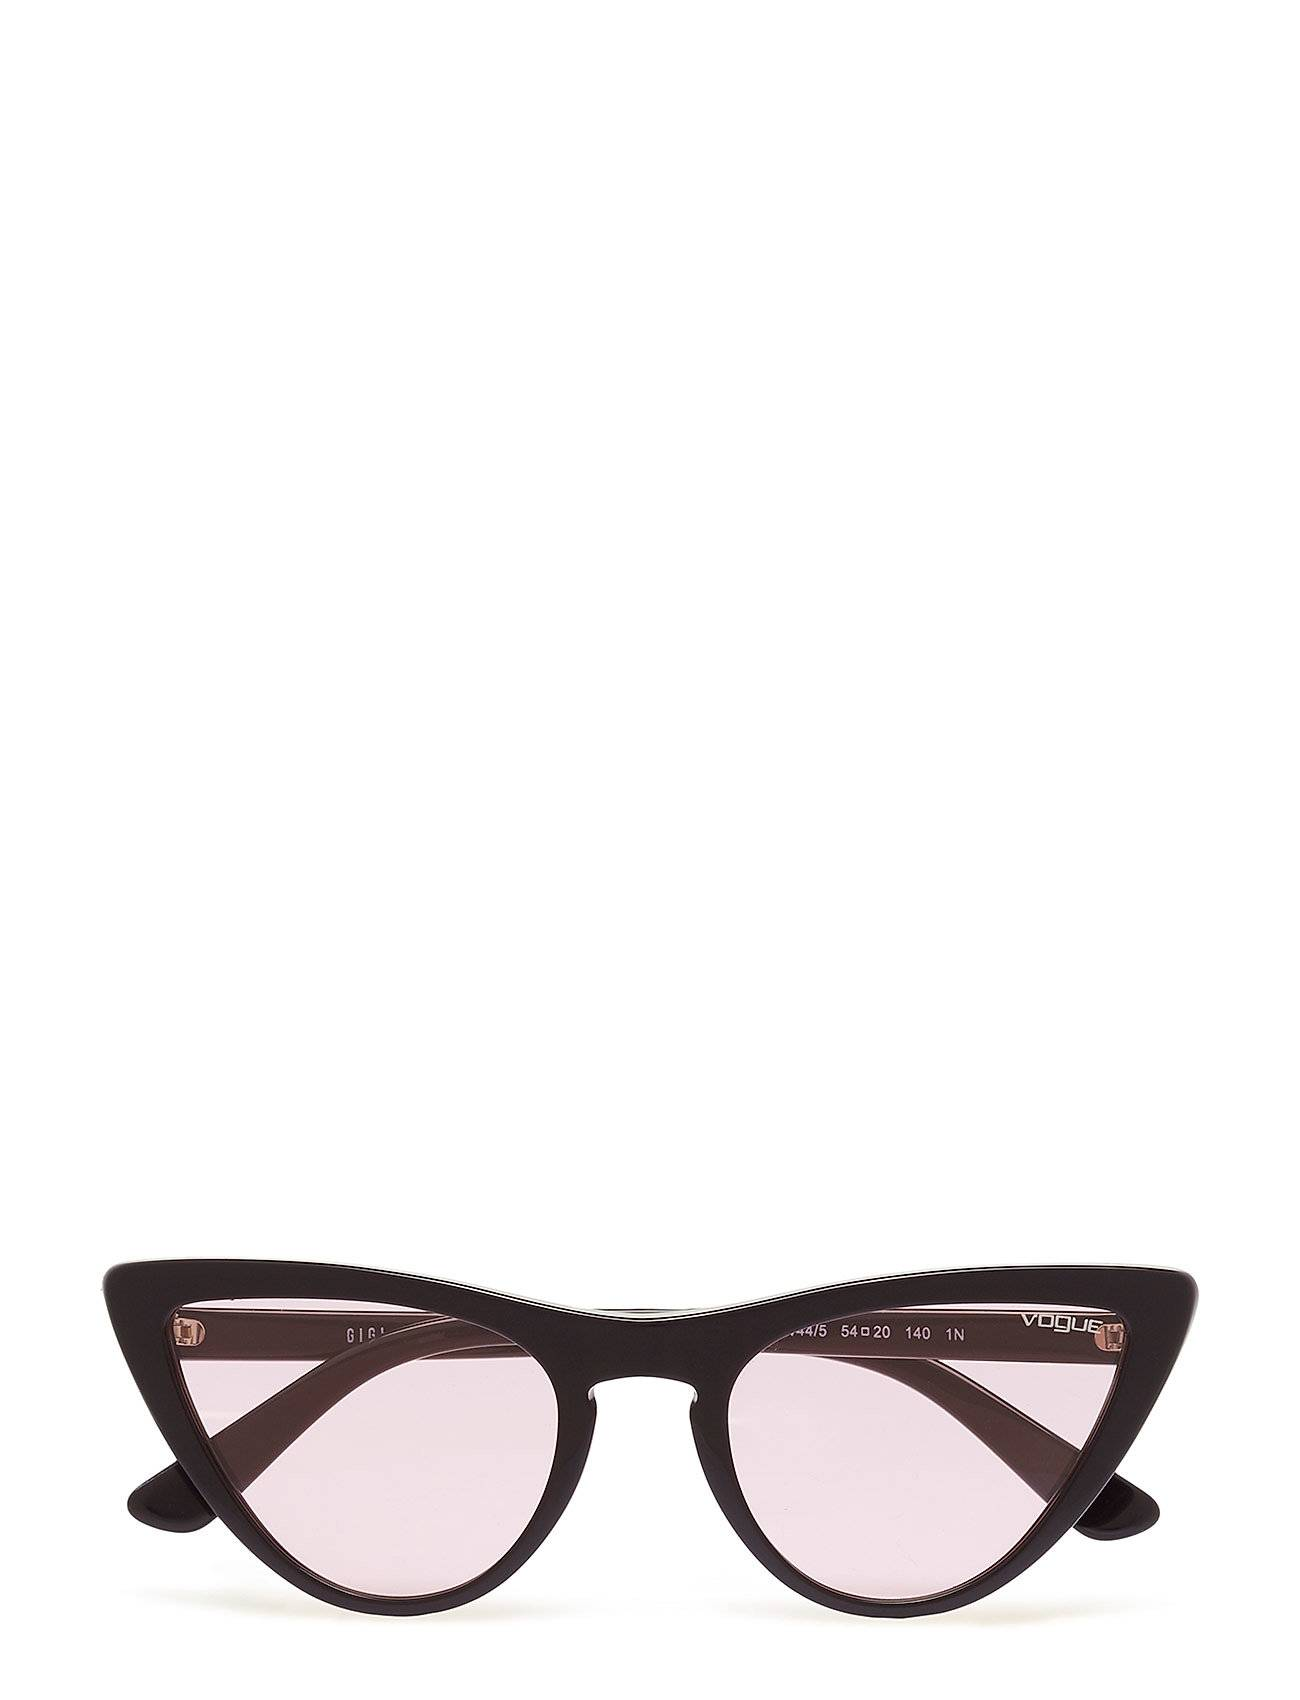 Vogue Eyewear Women